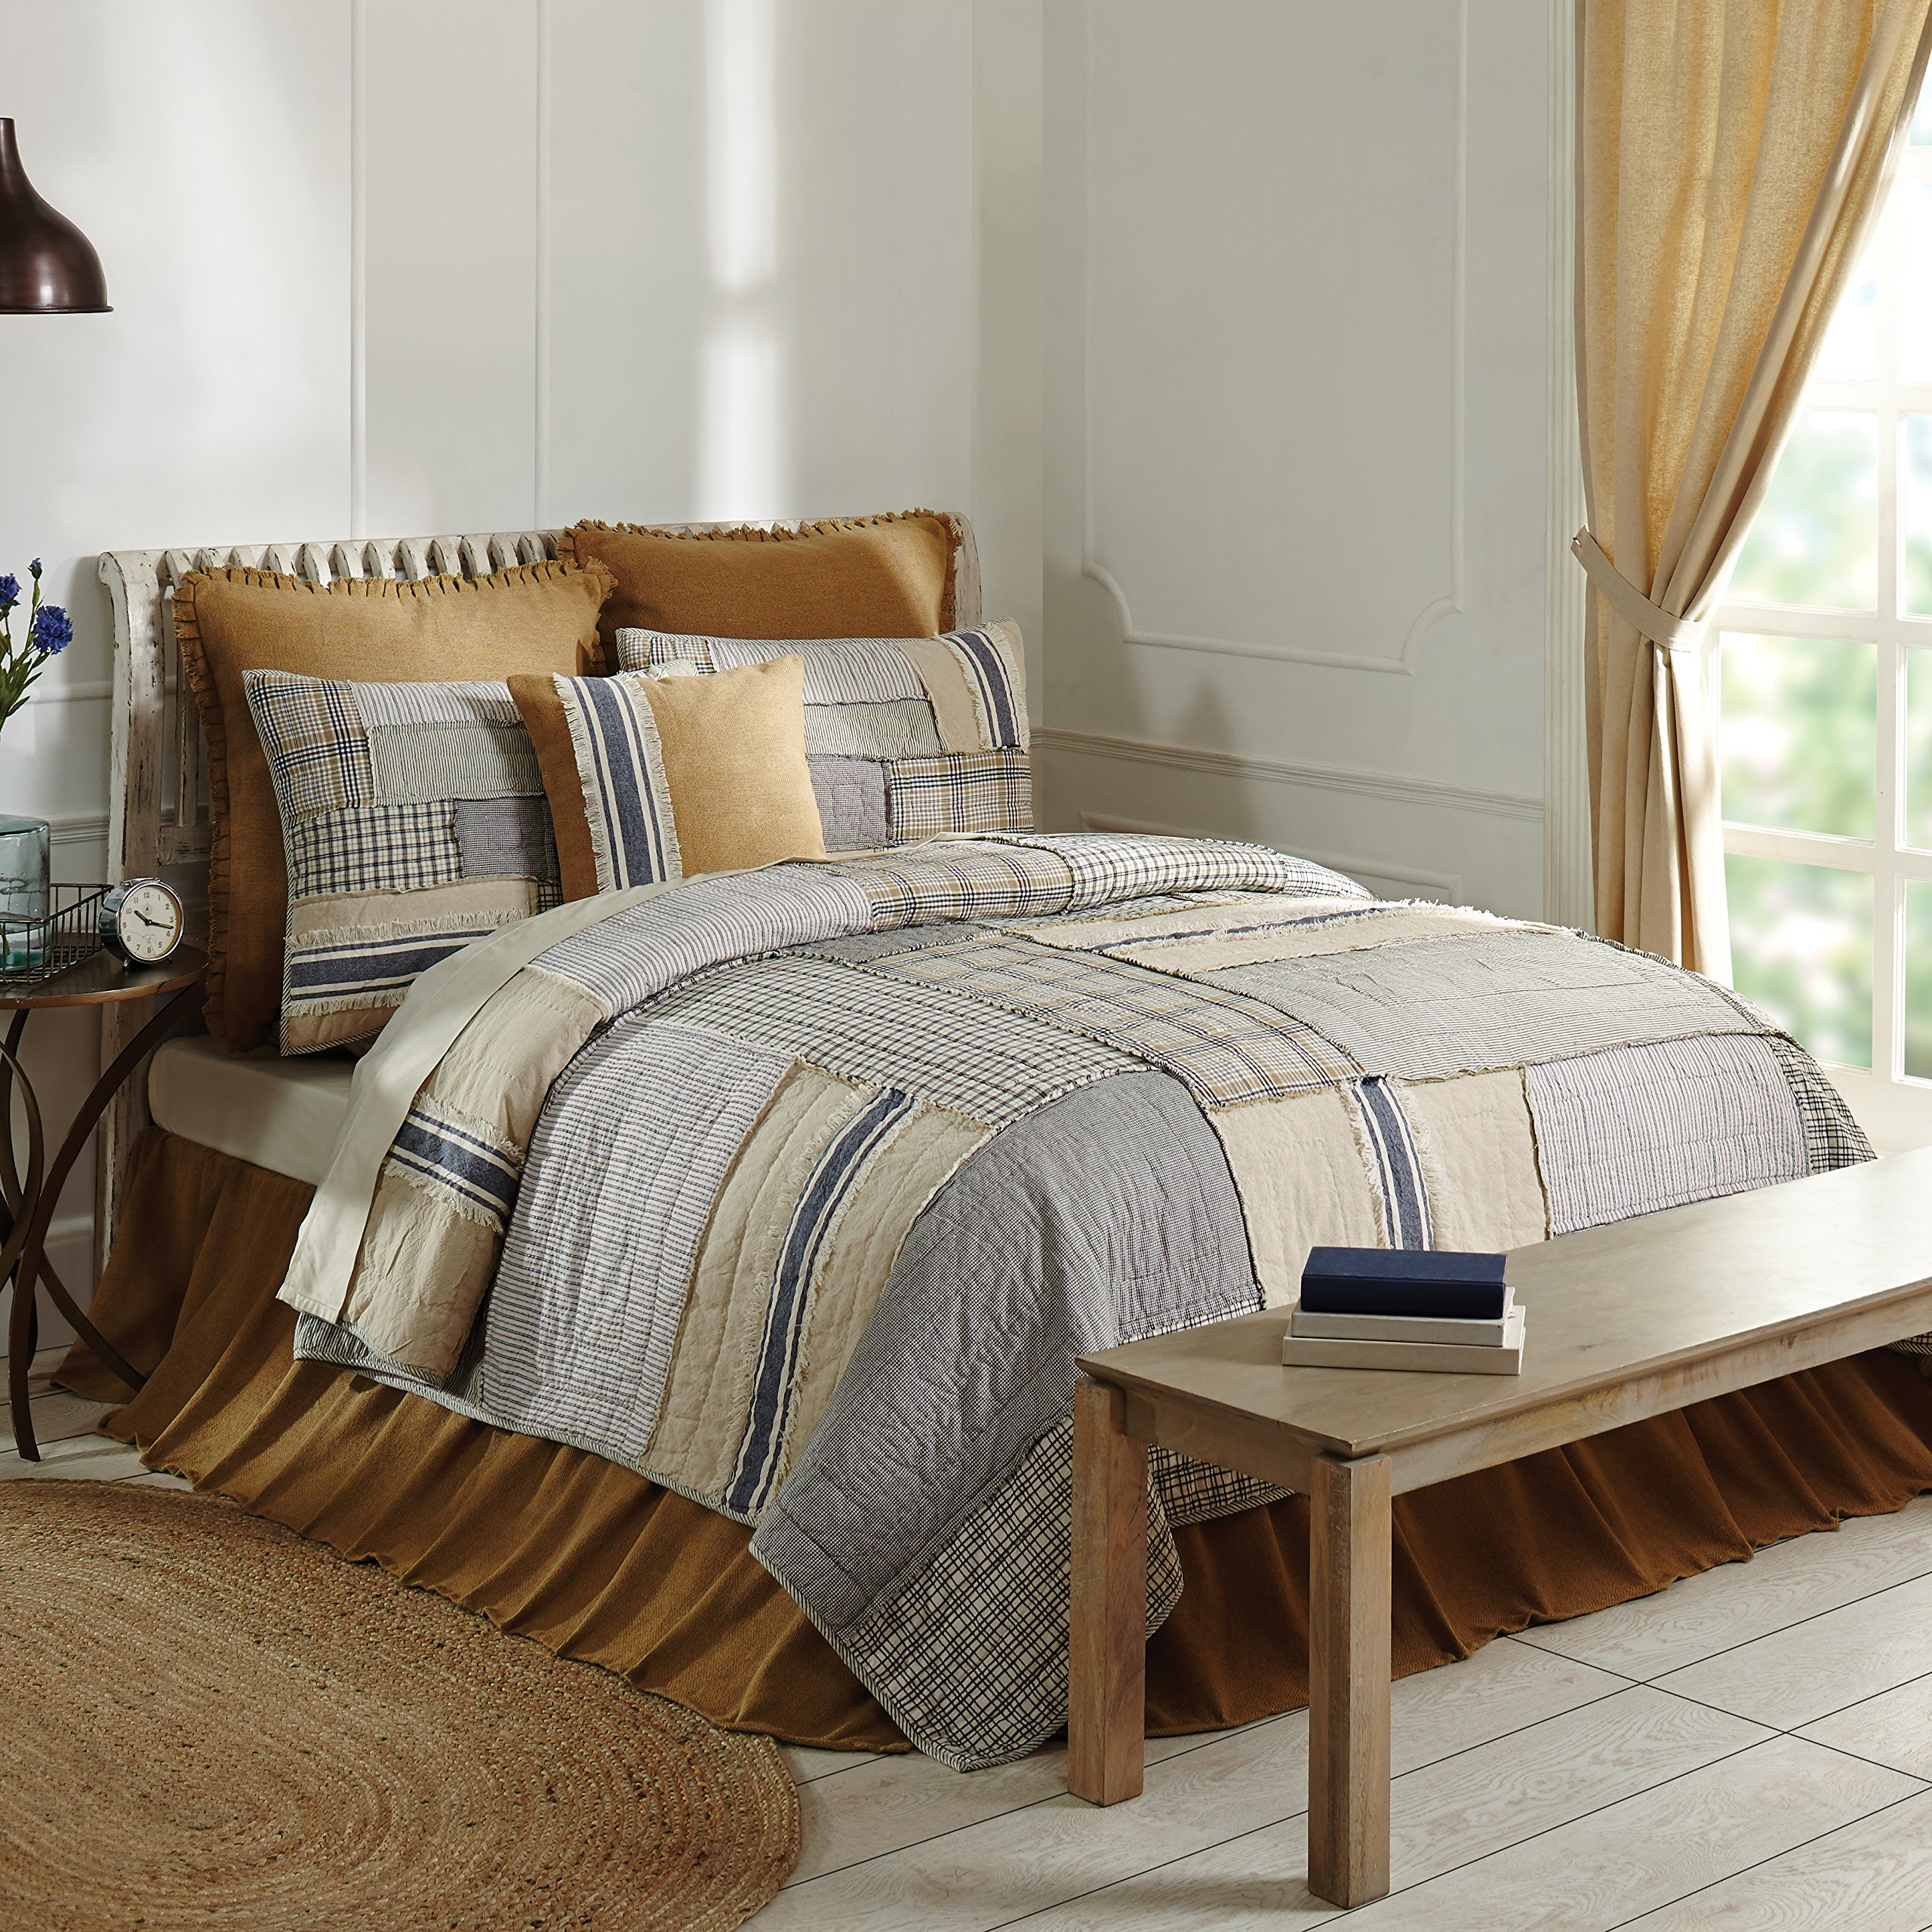 Mill Creek King Quilt, 95 x 105, Farmhouse Style, Country Quilted Bedding by Piper Classics